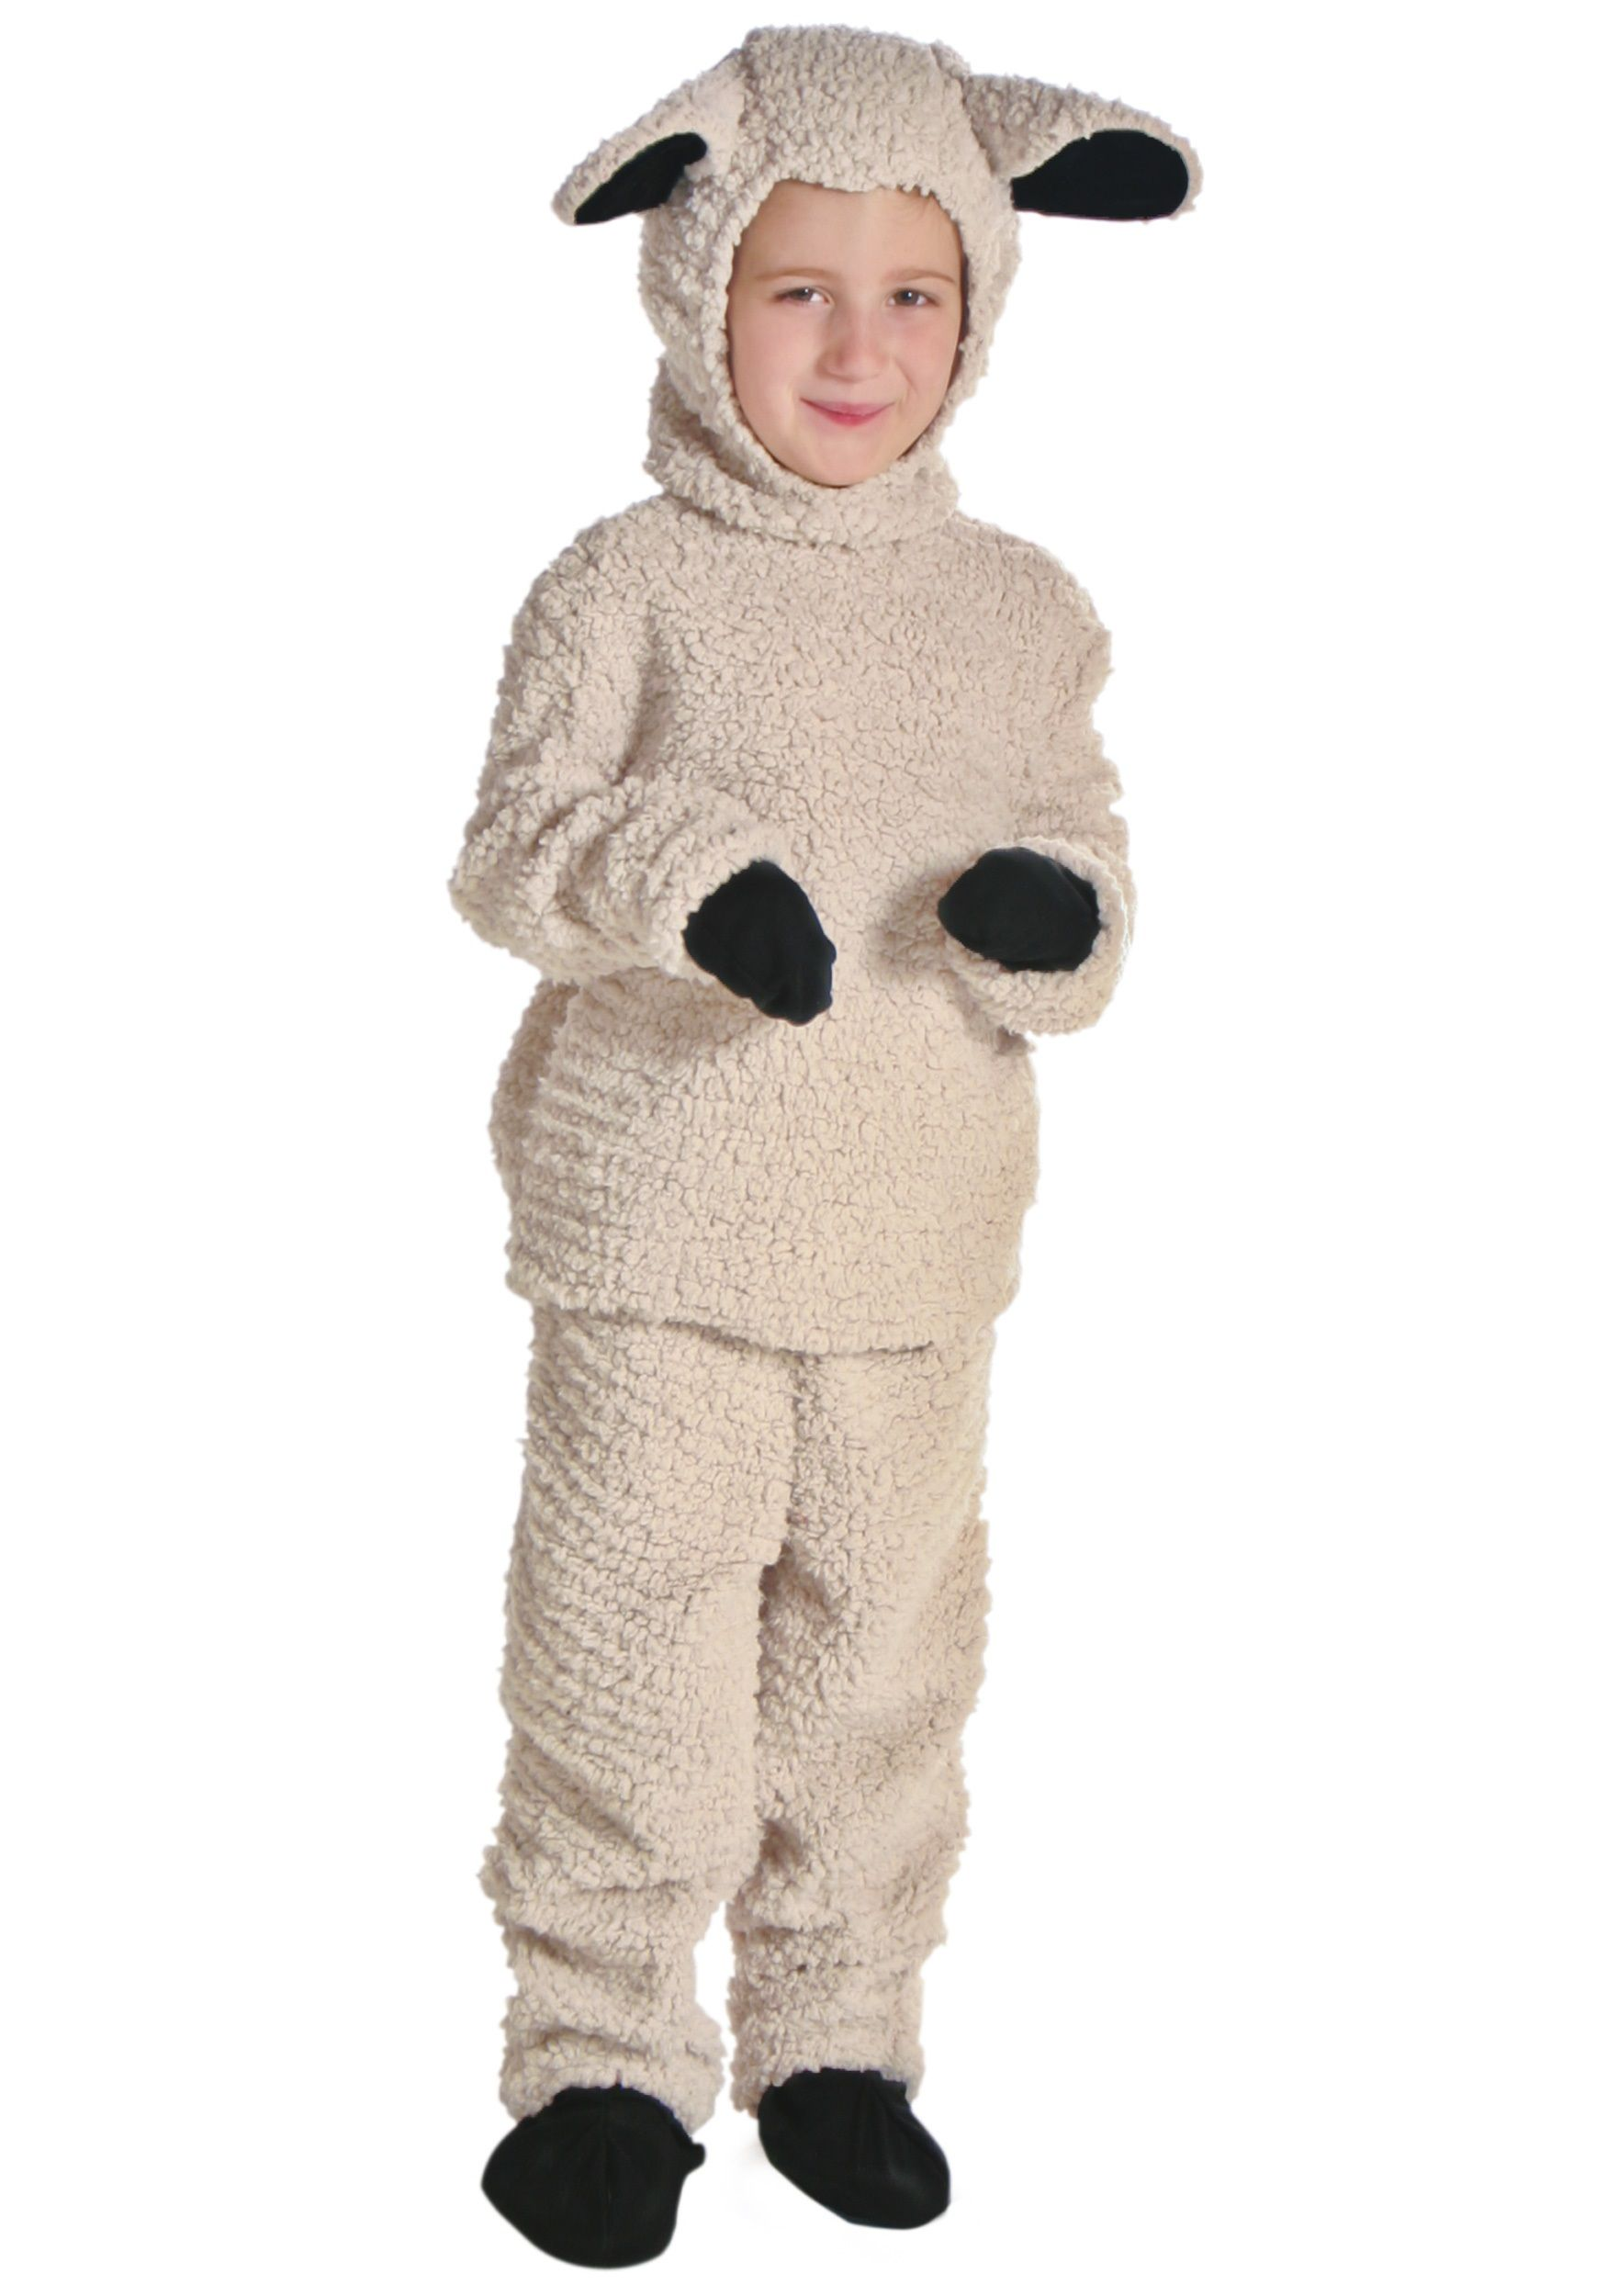 Child Sheep Costume | Sheep costumes, Sheep and Costumes